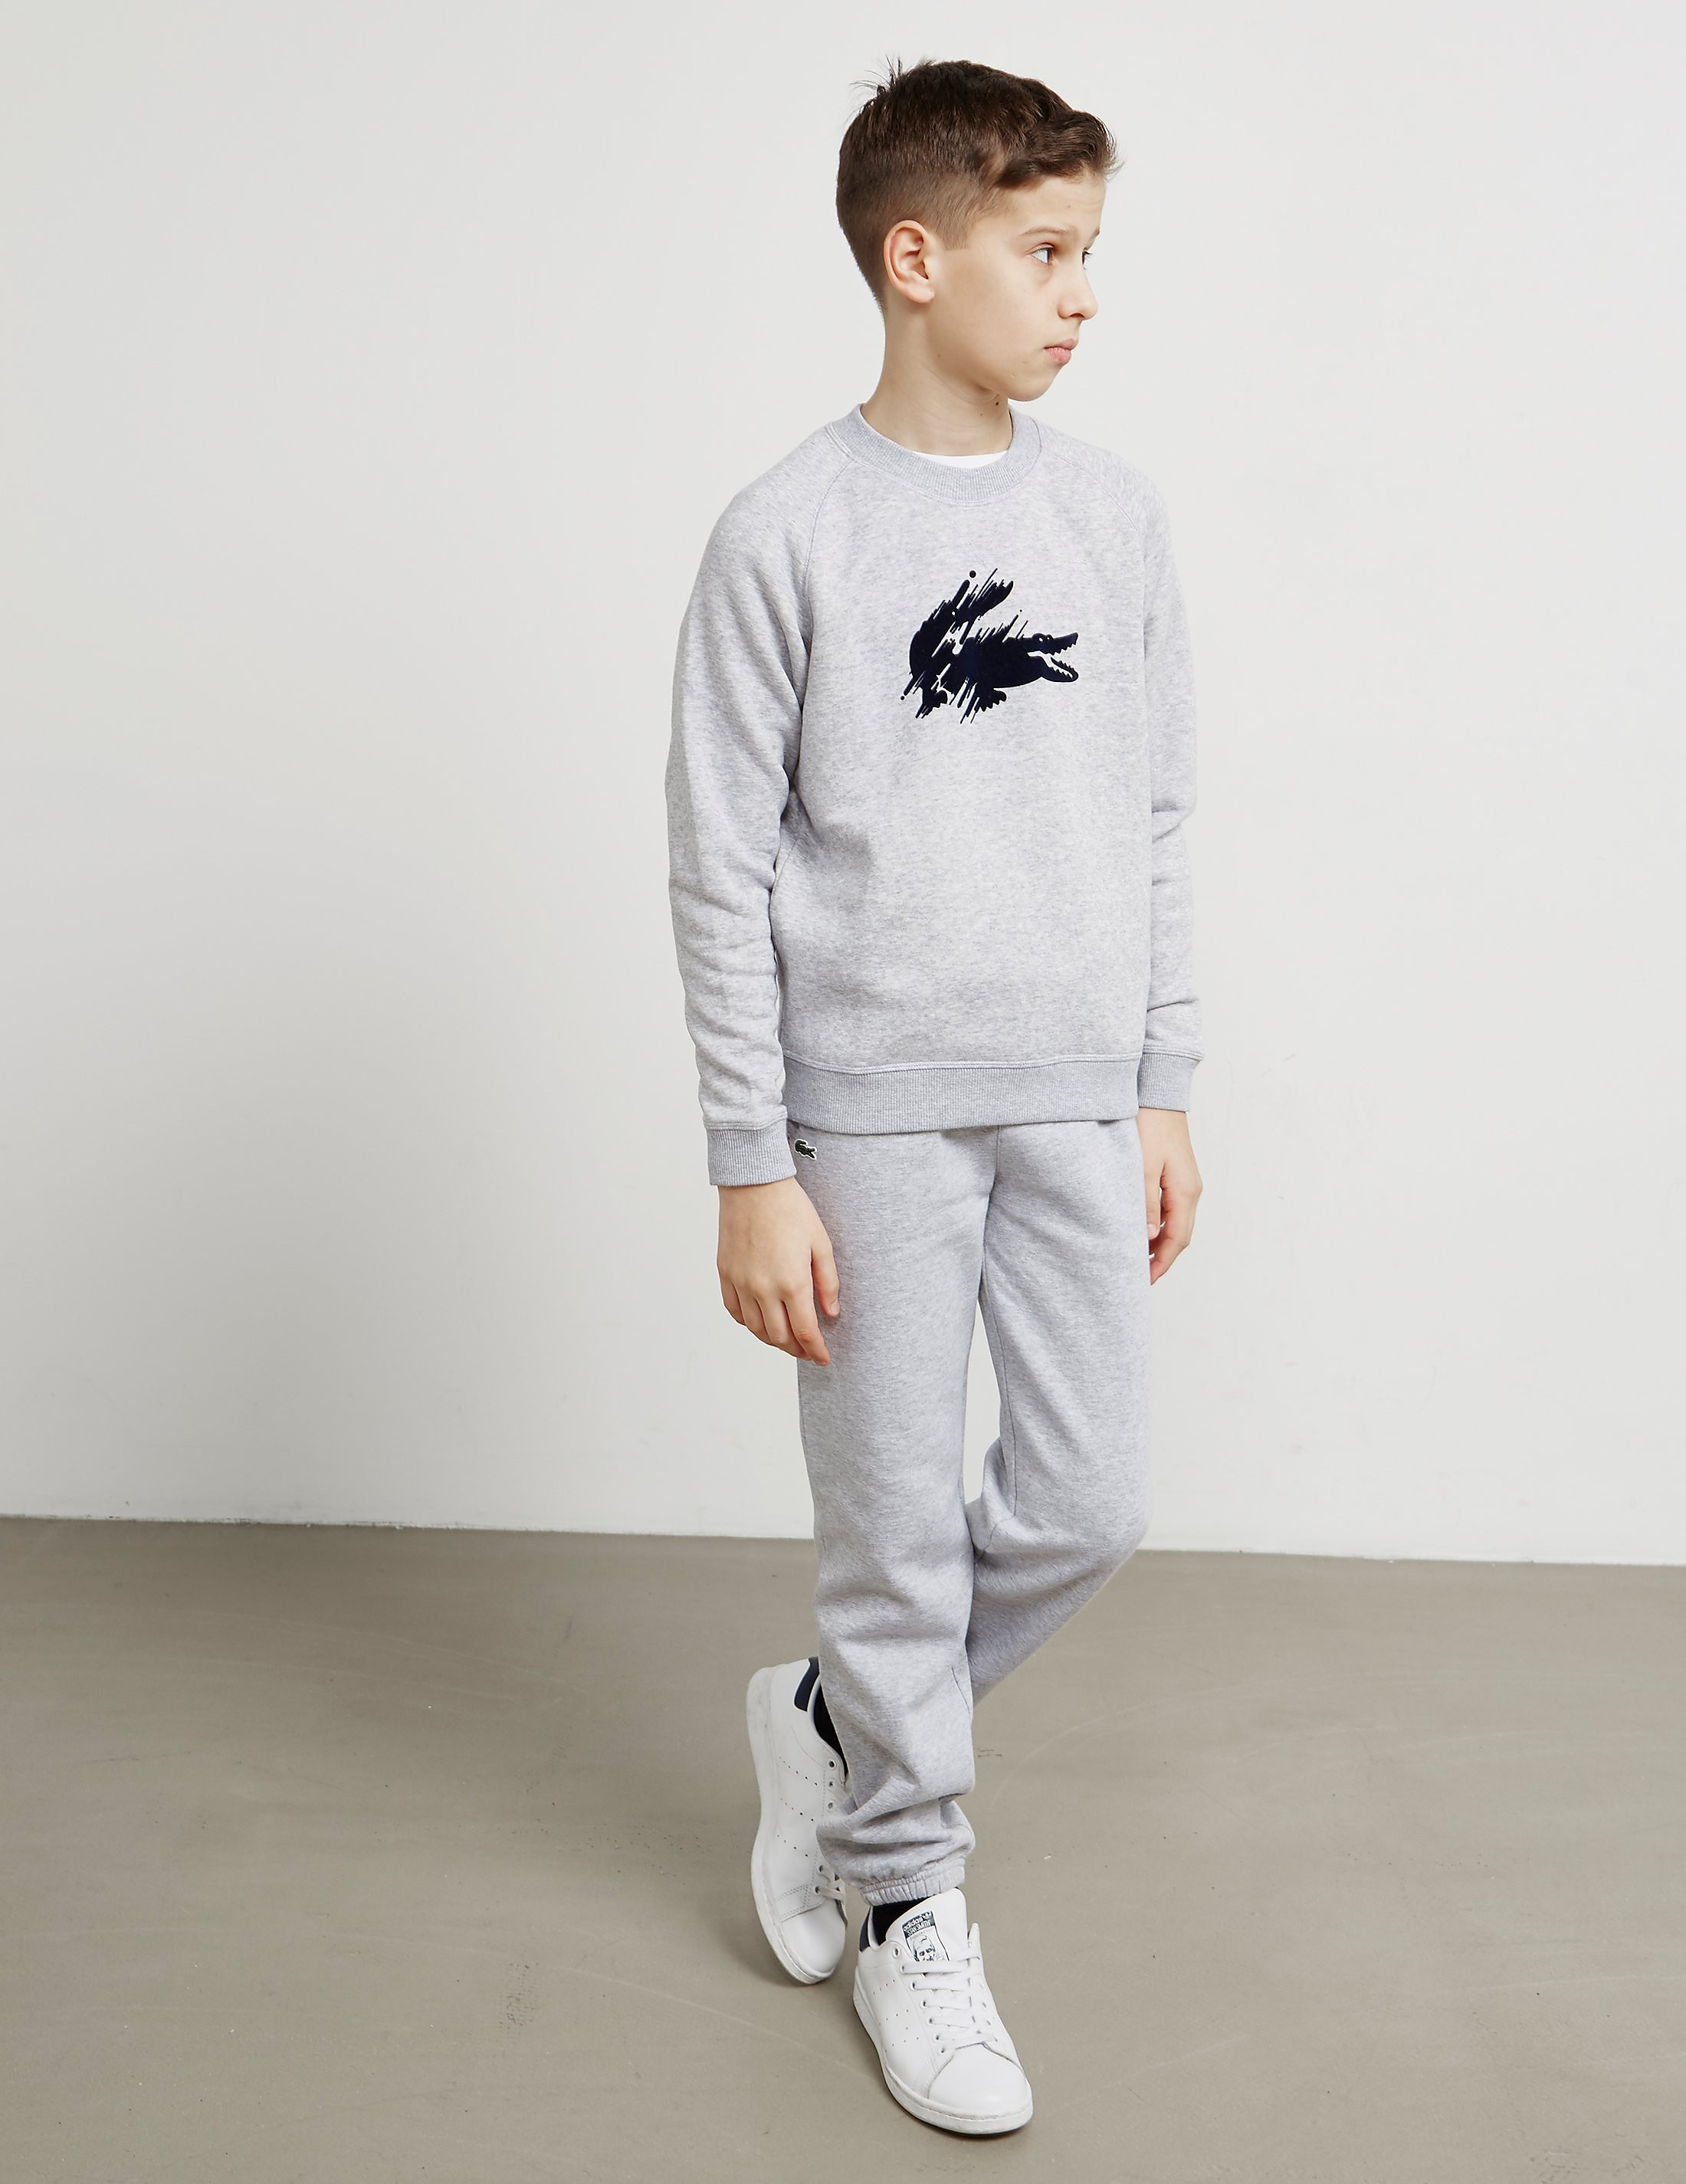 Lacoste Sketch Sweatshirt